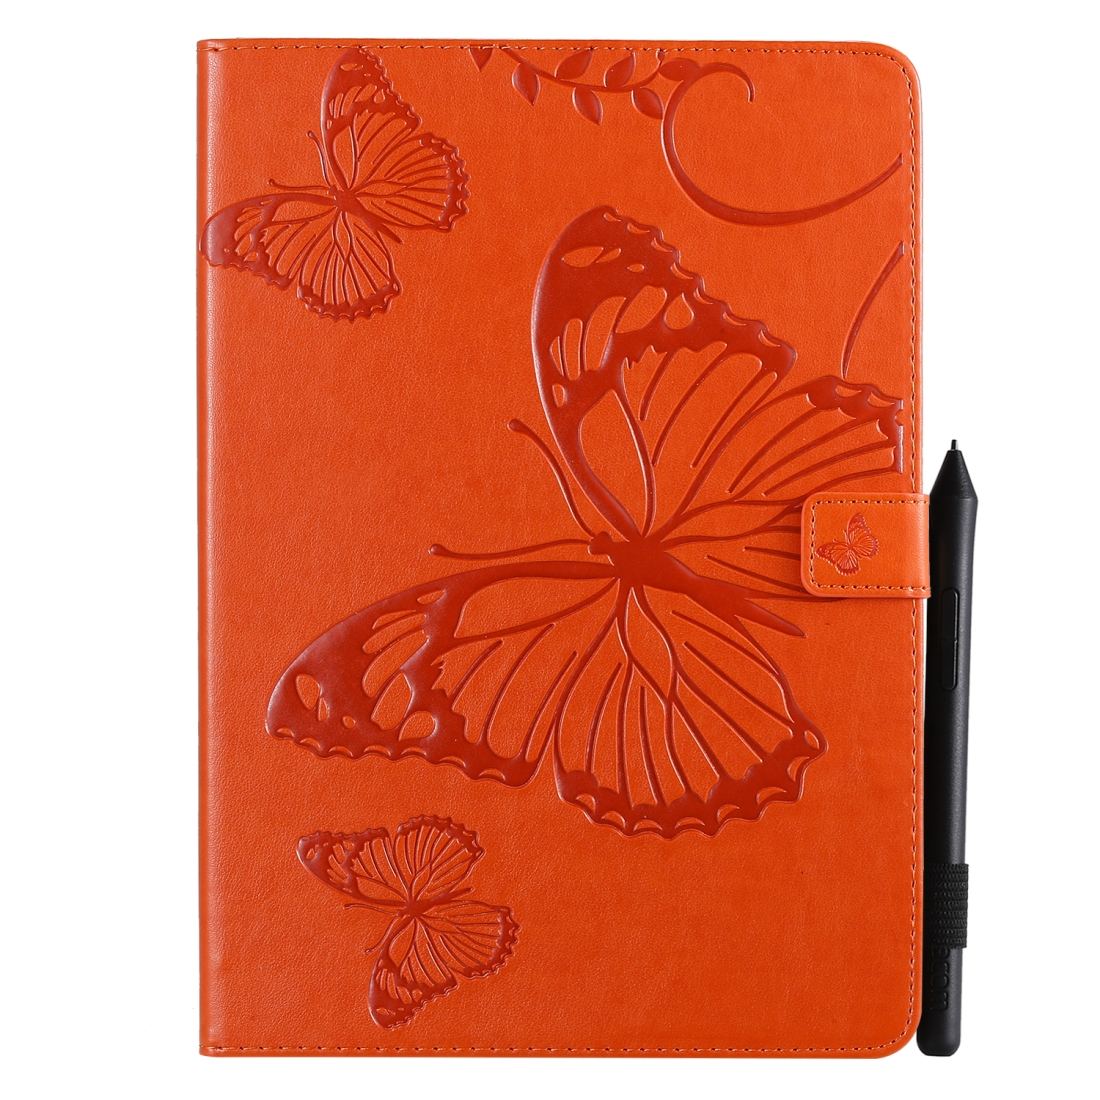 iPad 7th Generation Case (10.2 Inch) Also Fits /Pro 10.5/Air 2019 Leather Butterfly Design (Orange)